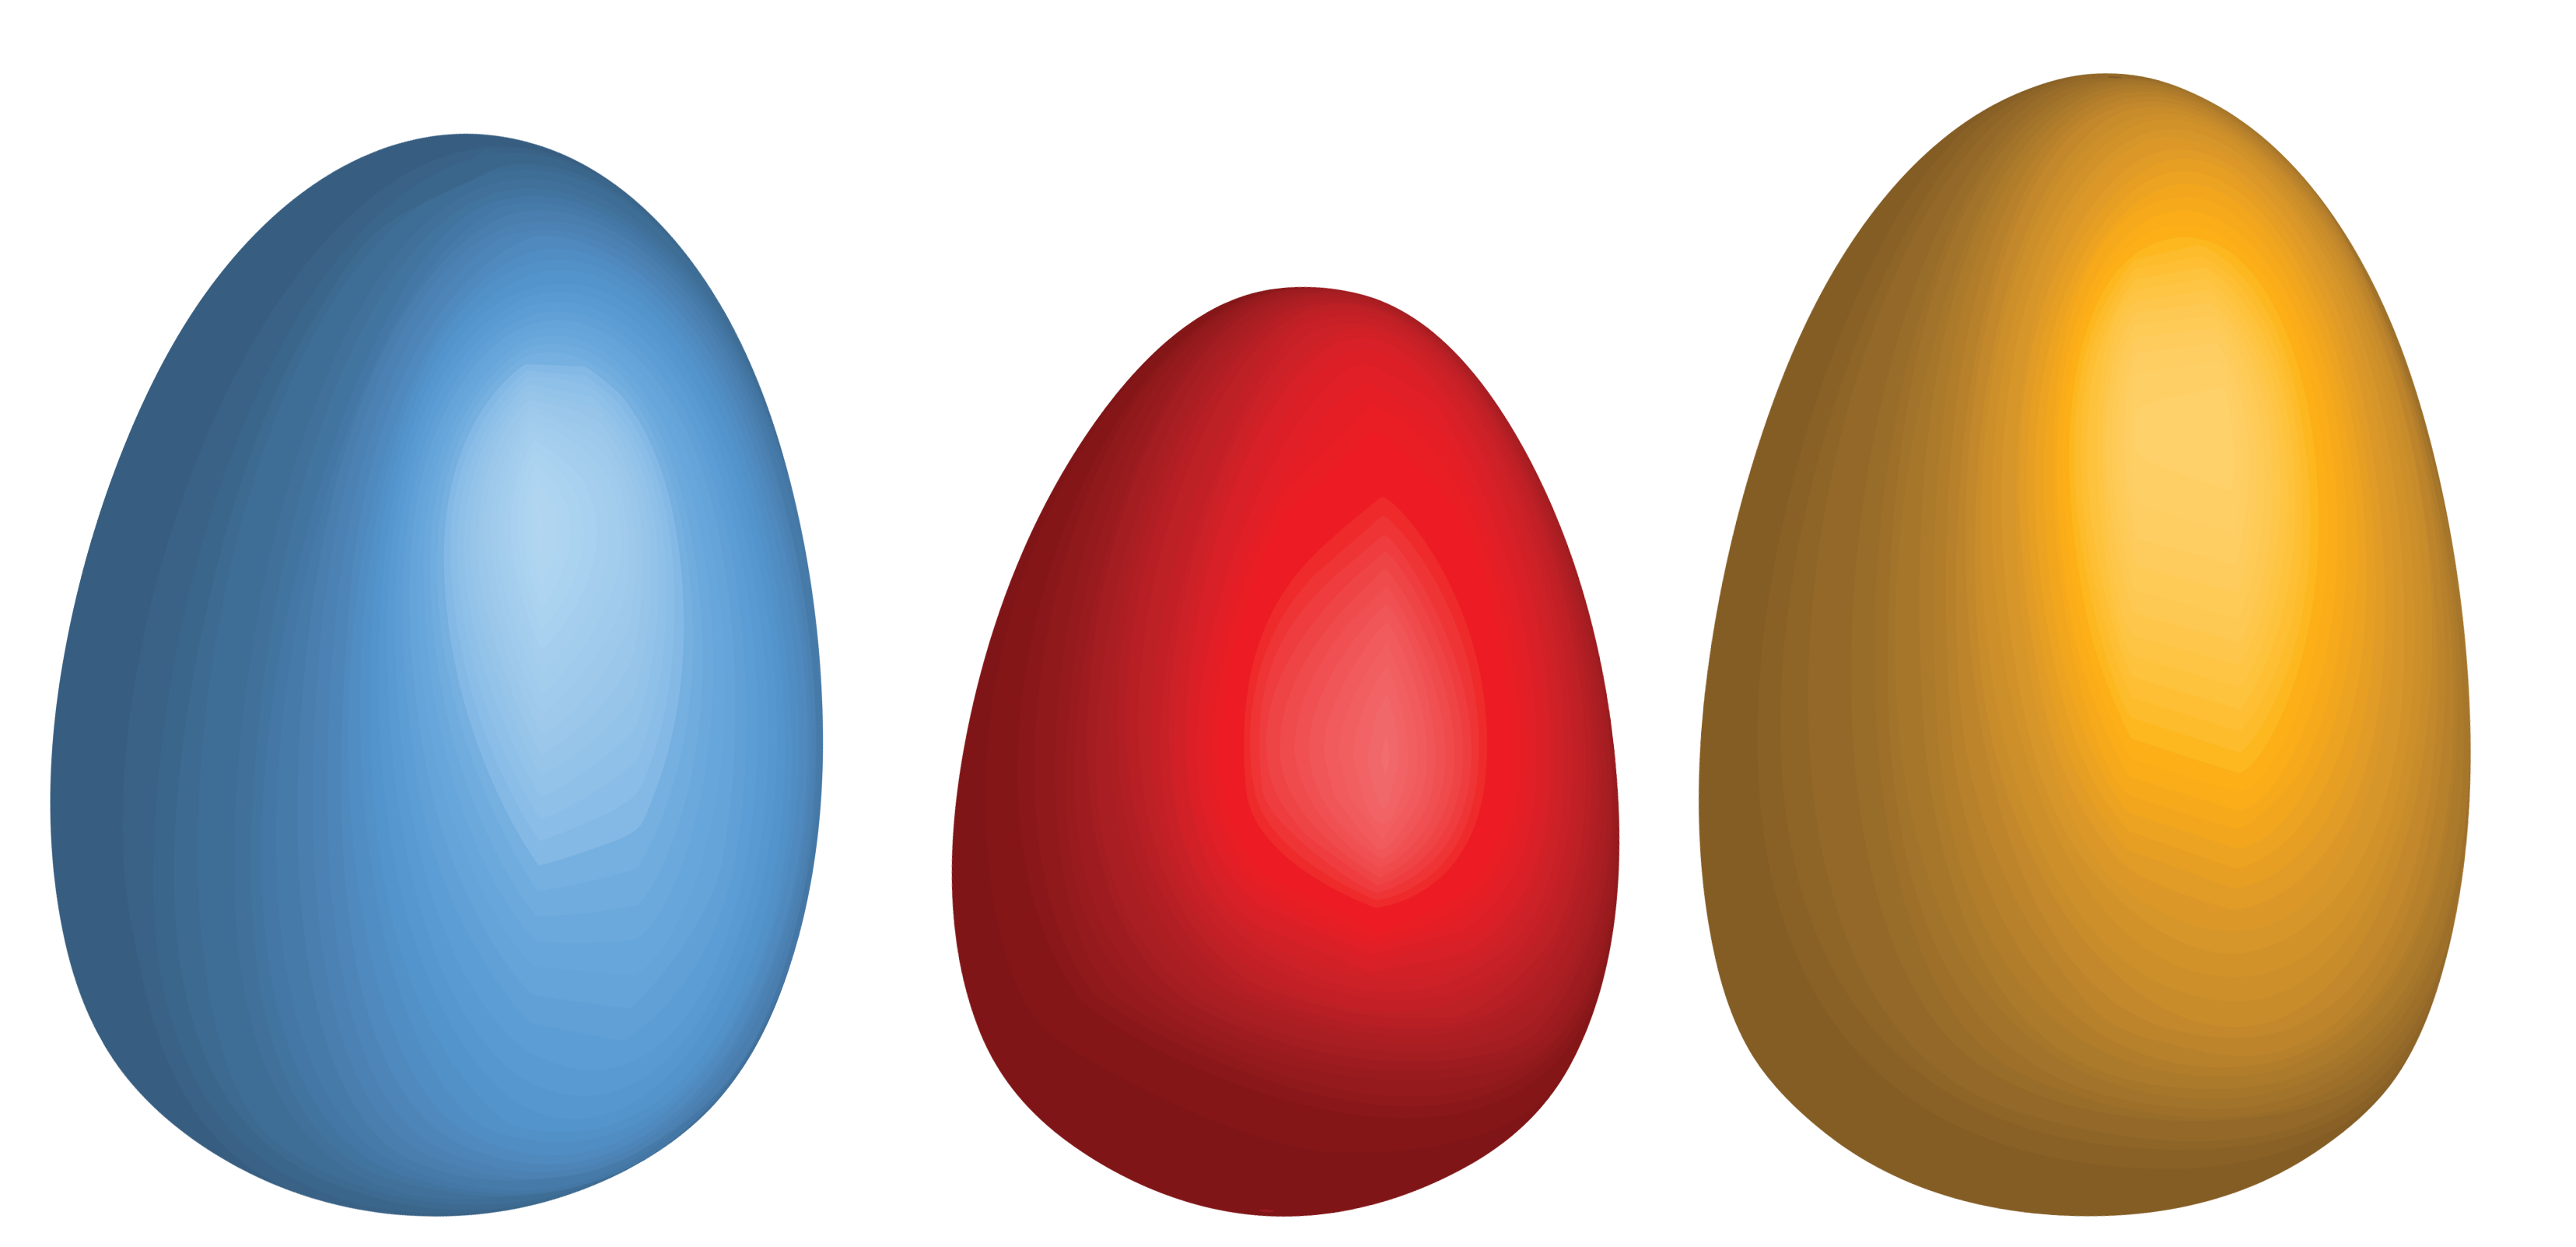 Fruit clipart egg. Eggs png image free